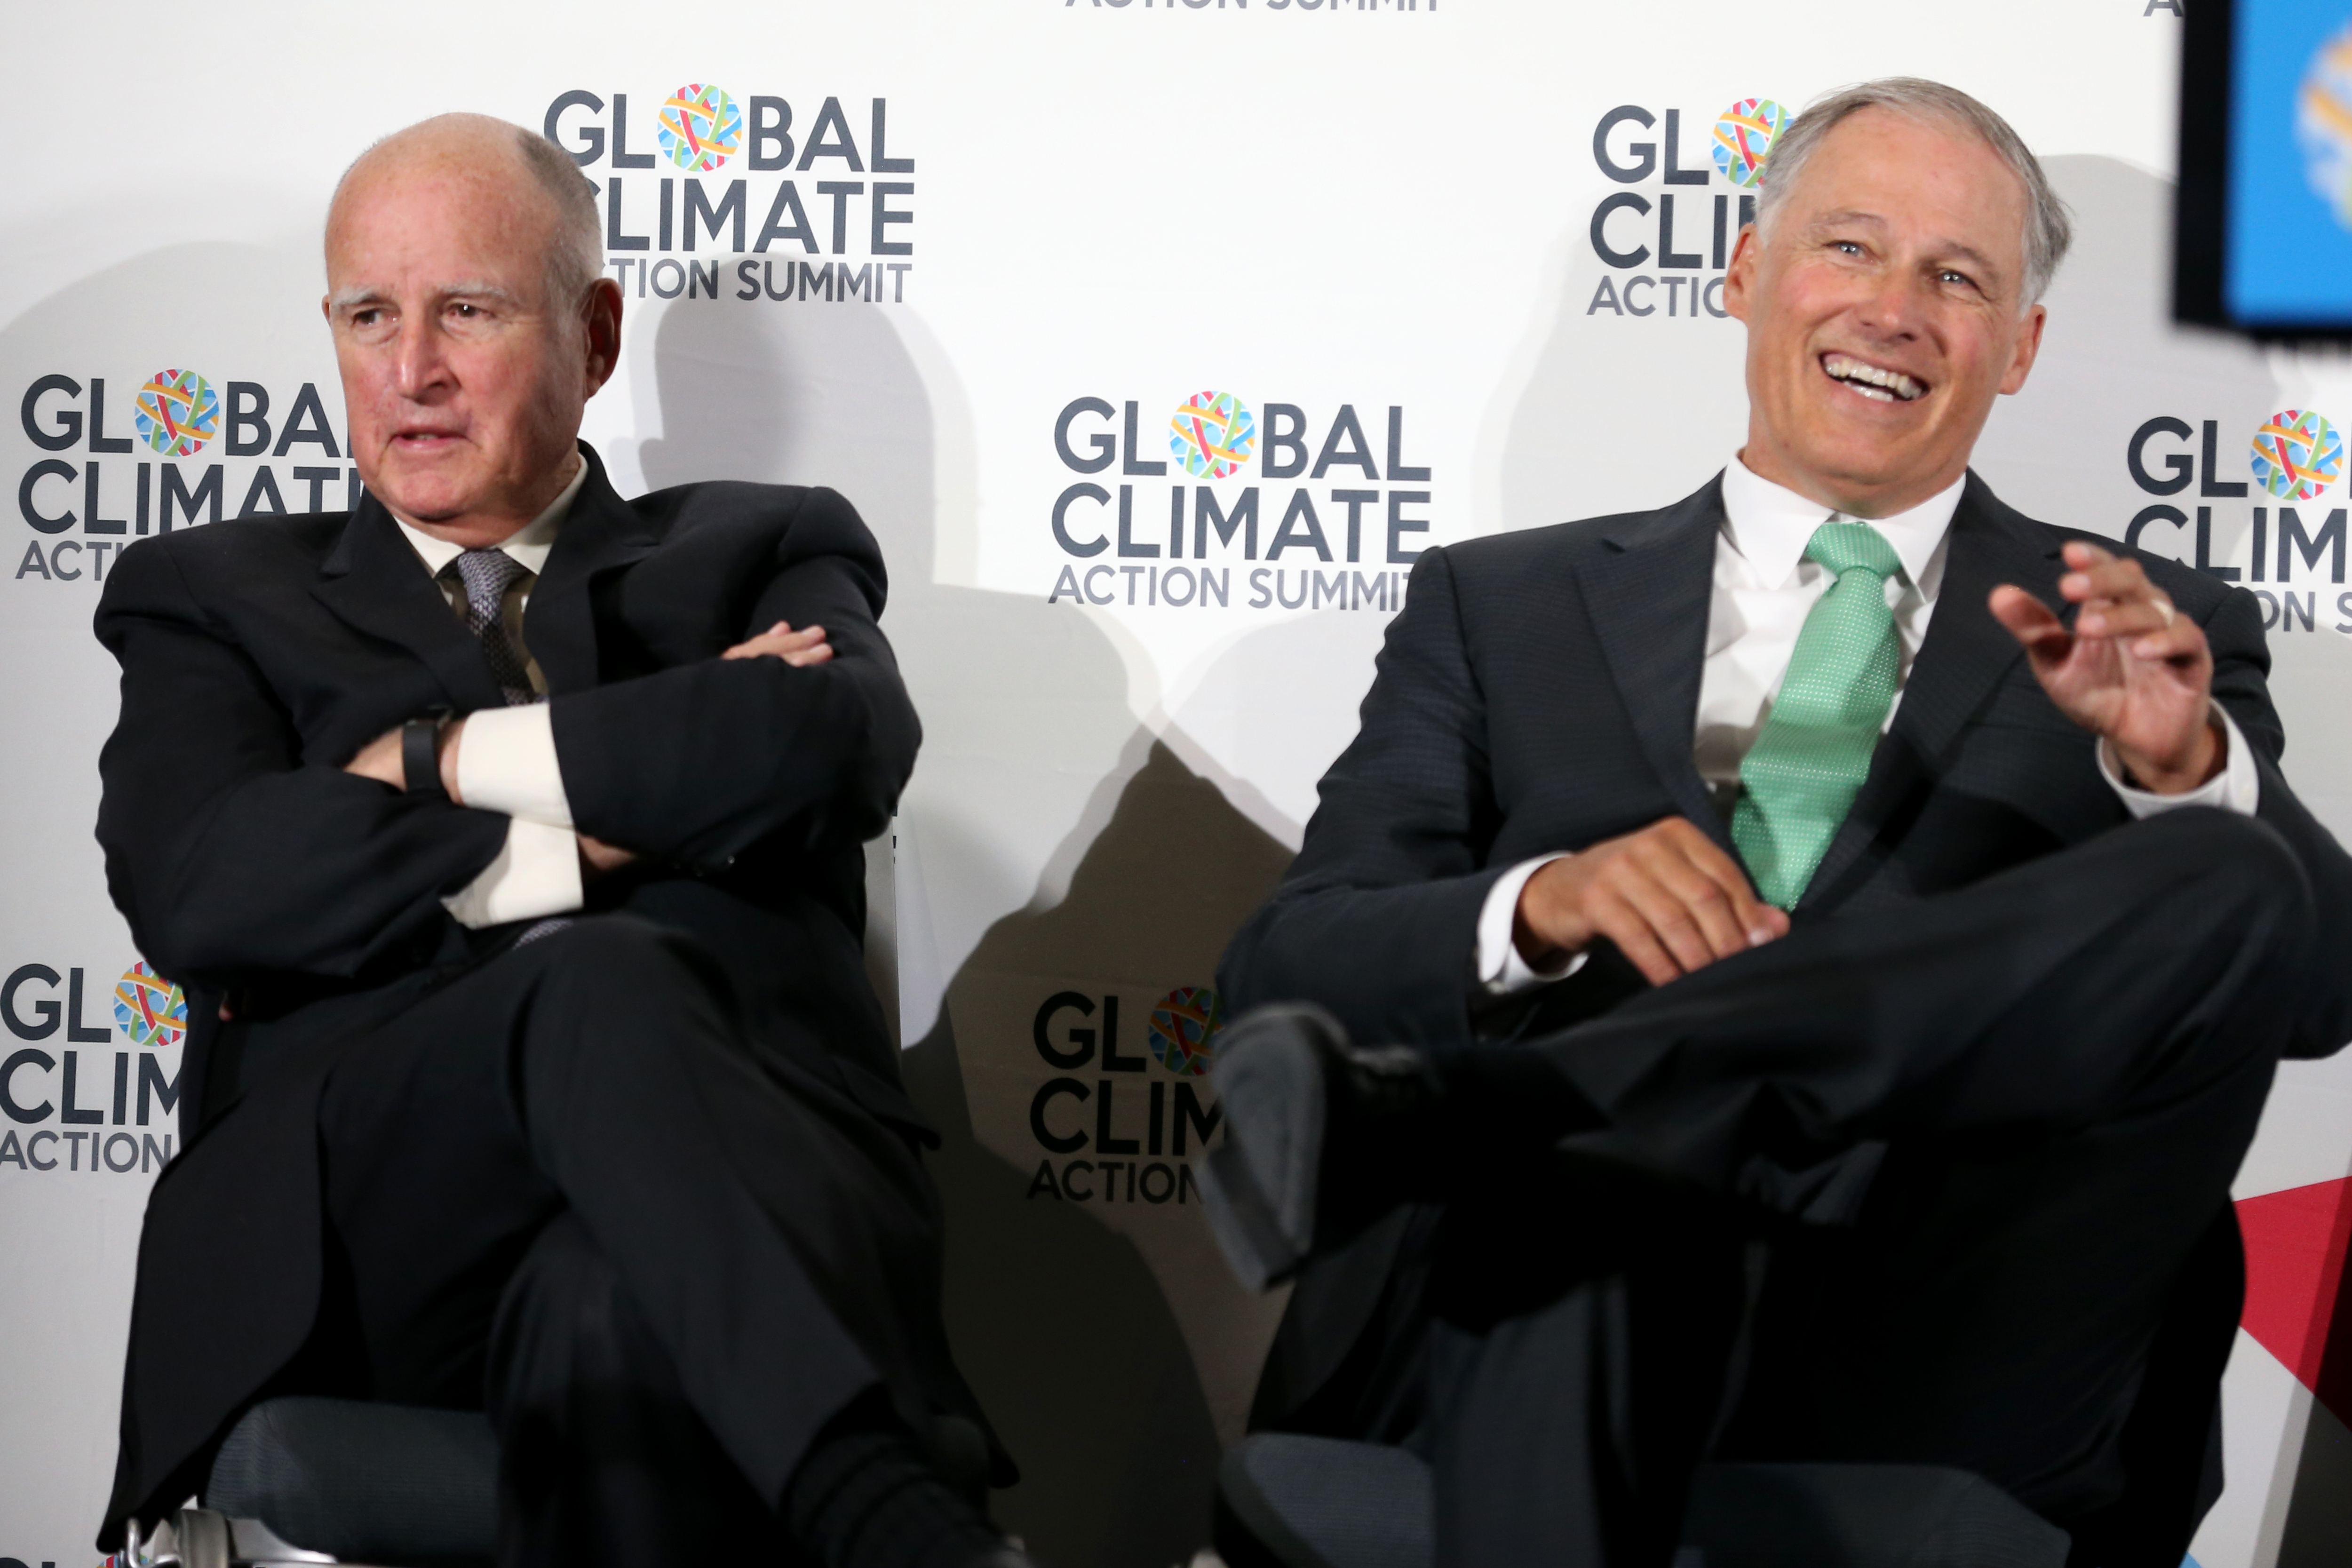 Governors Jerry Brown of California and Jay Inslee of Washington at the Global Climate Action Summit